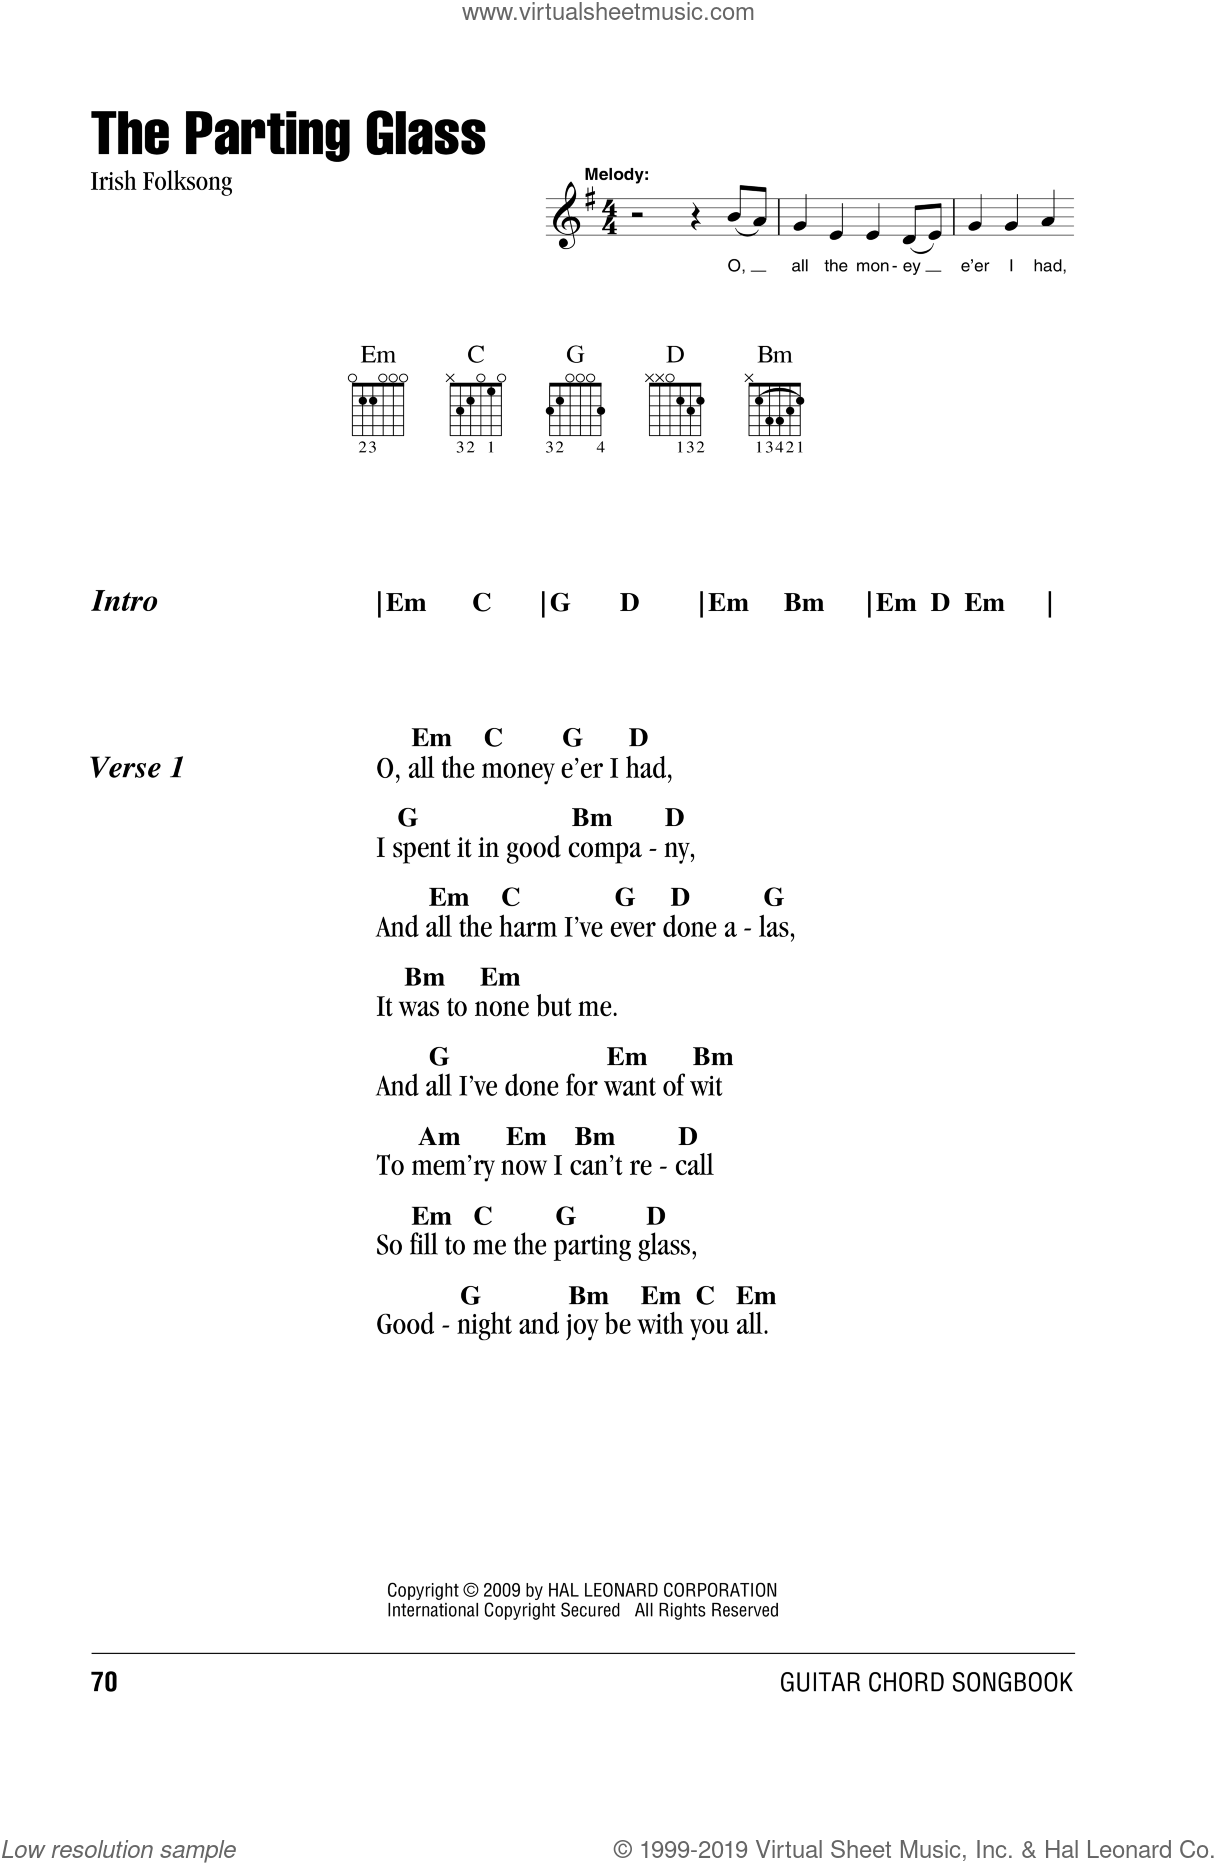 The Parting Glass sheet music for guitar (chords), intermediate skill level